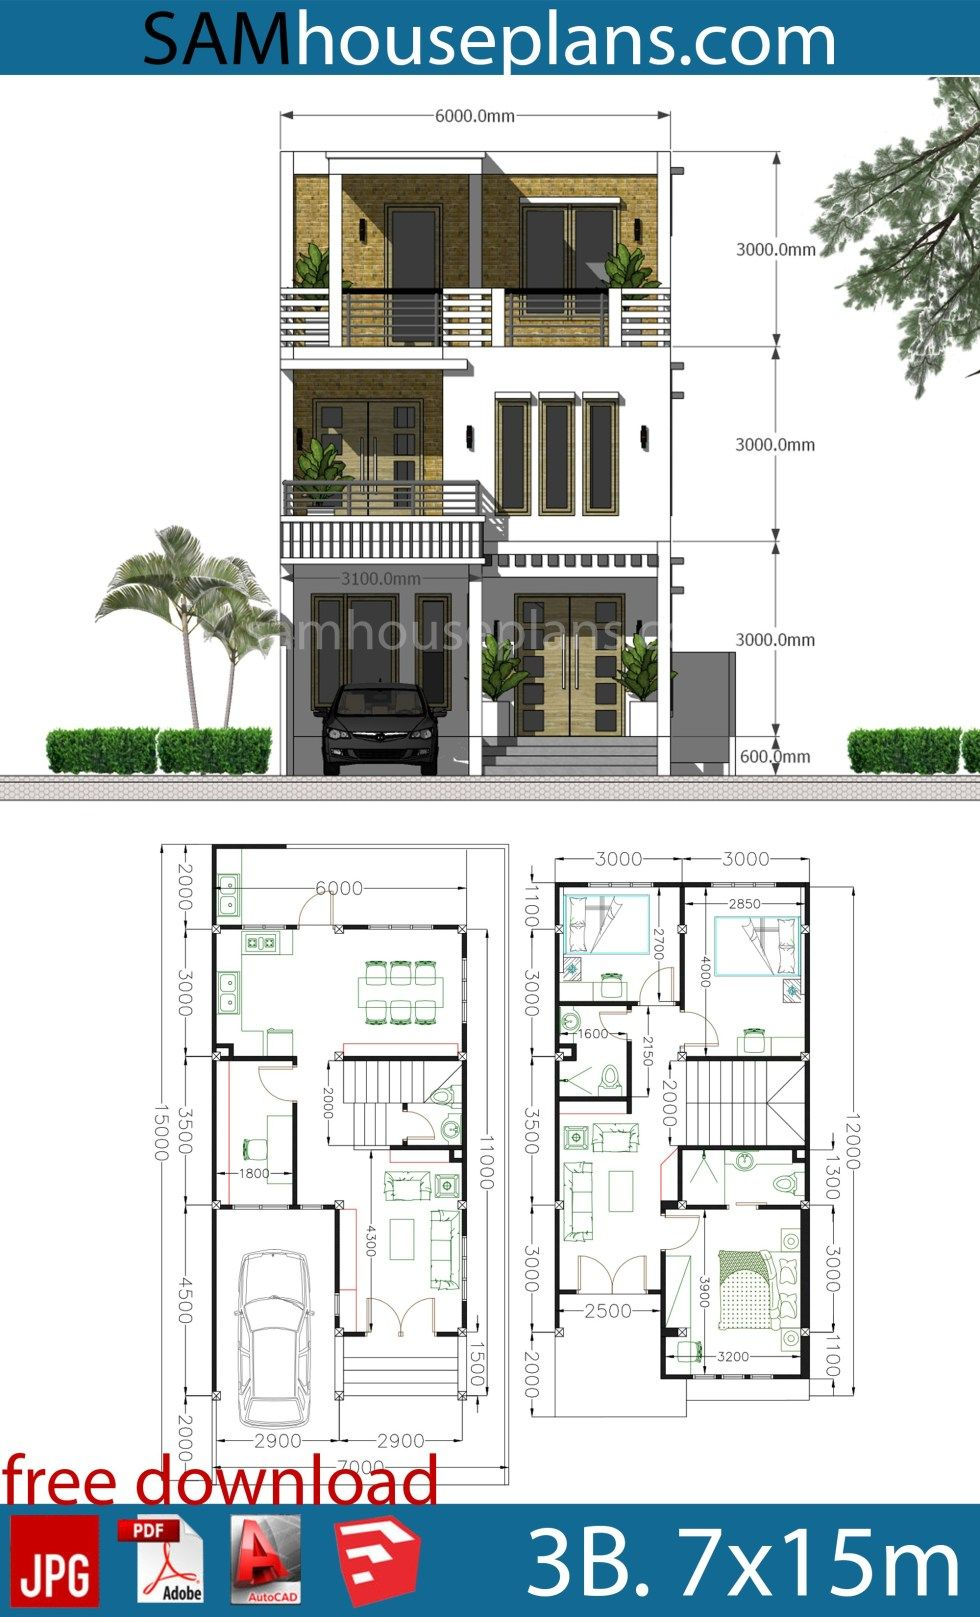 House Plans 7x15m With 3 Bedrooms Sam House Plans Narrow House Plans House Plans Mansion Model House Plan